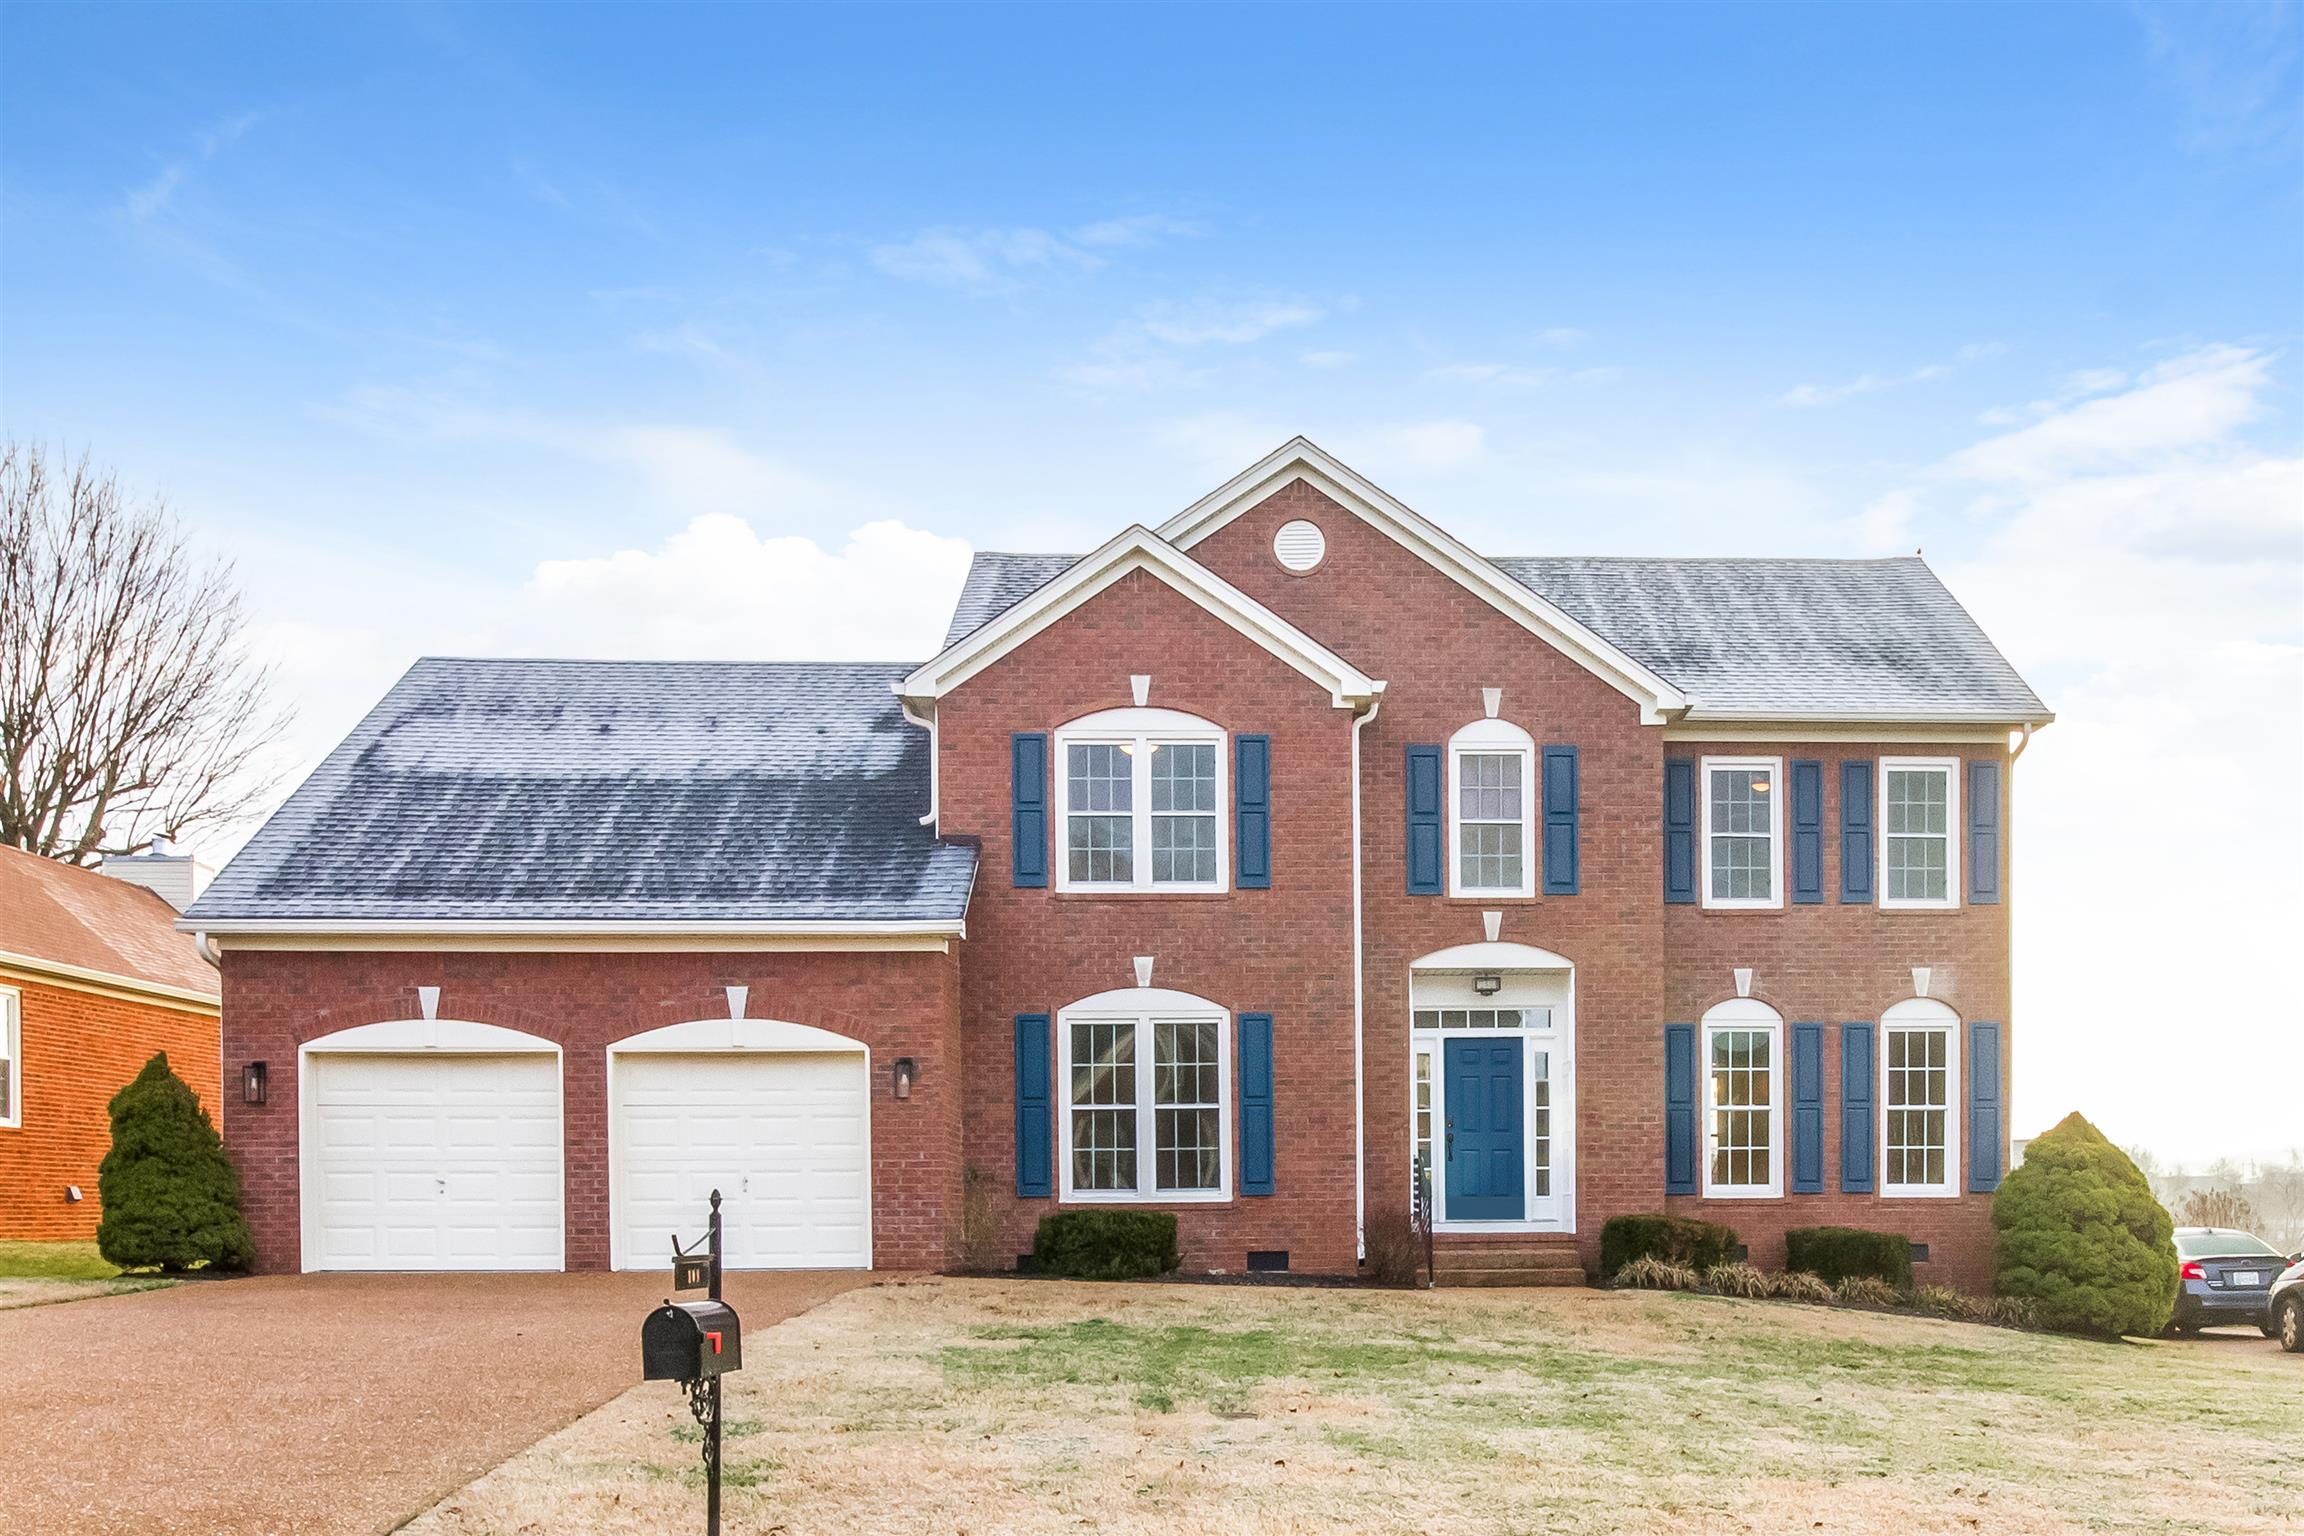 108 Stonehollow Way, Hendersonville, Tennessee